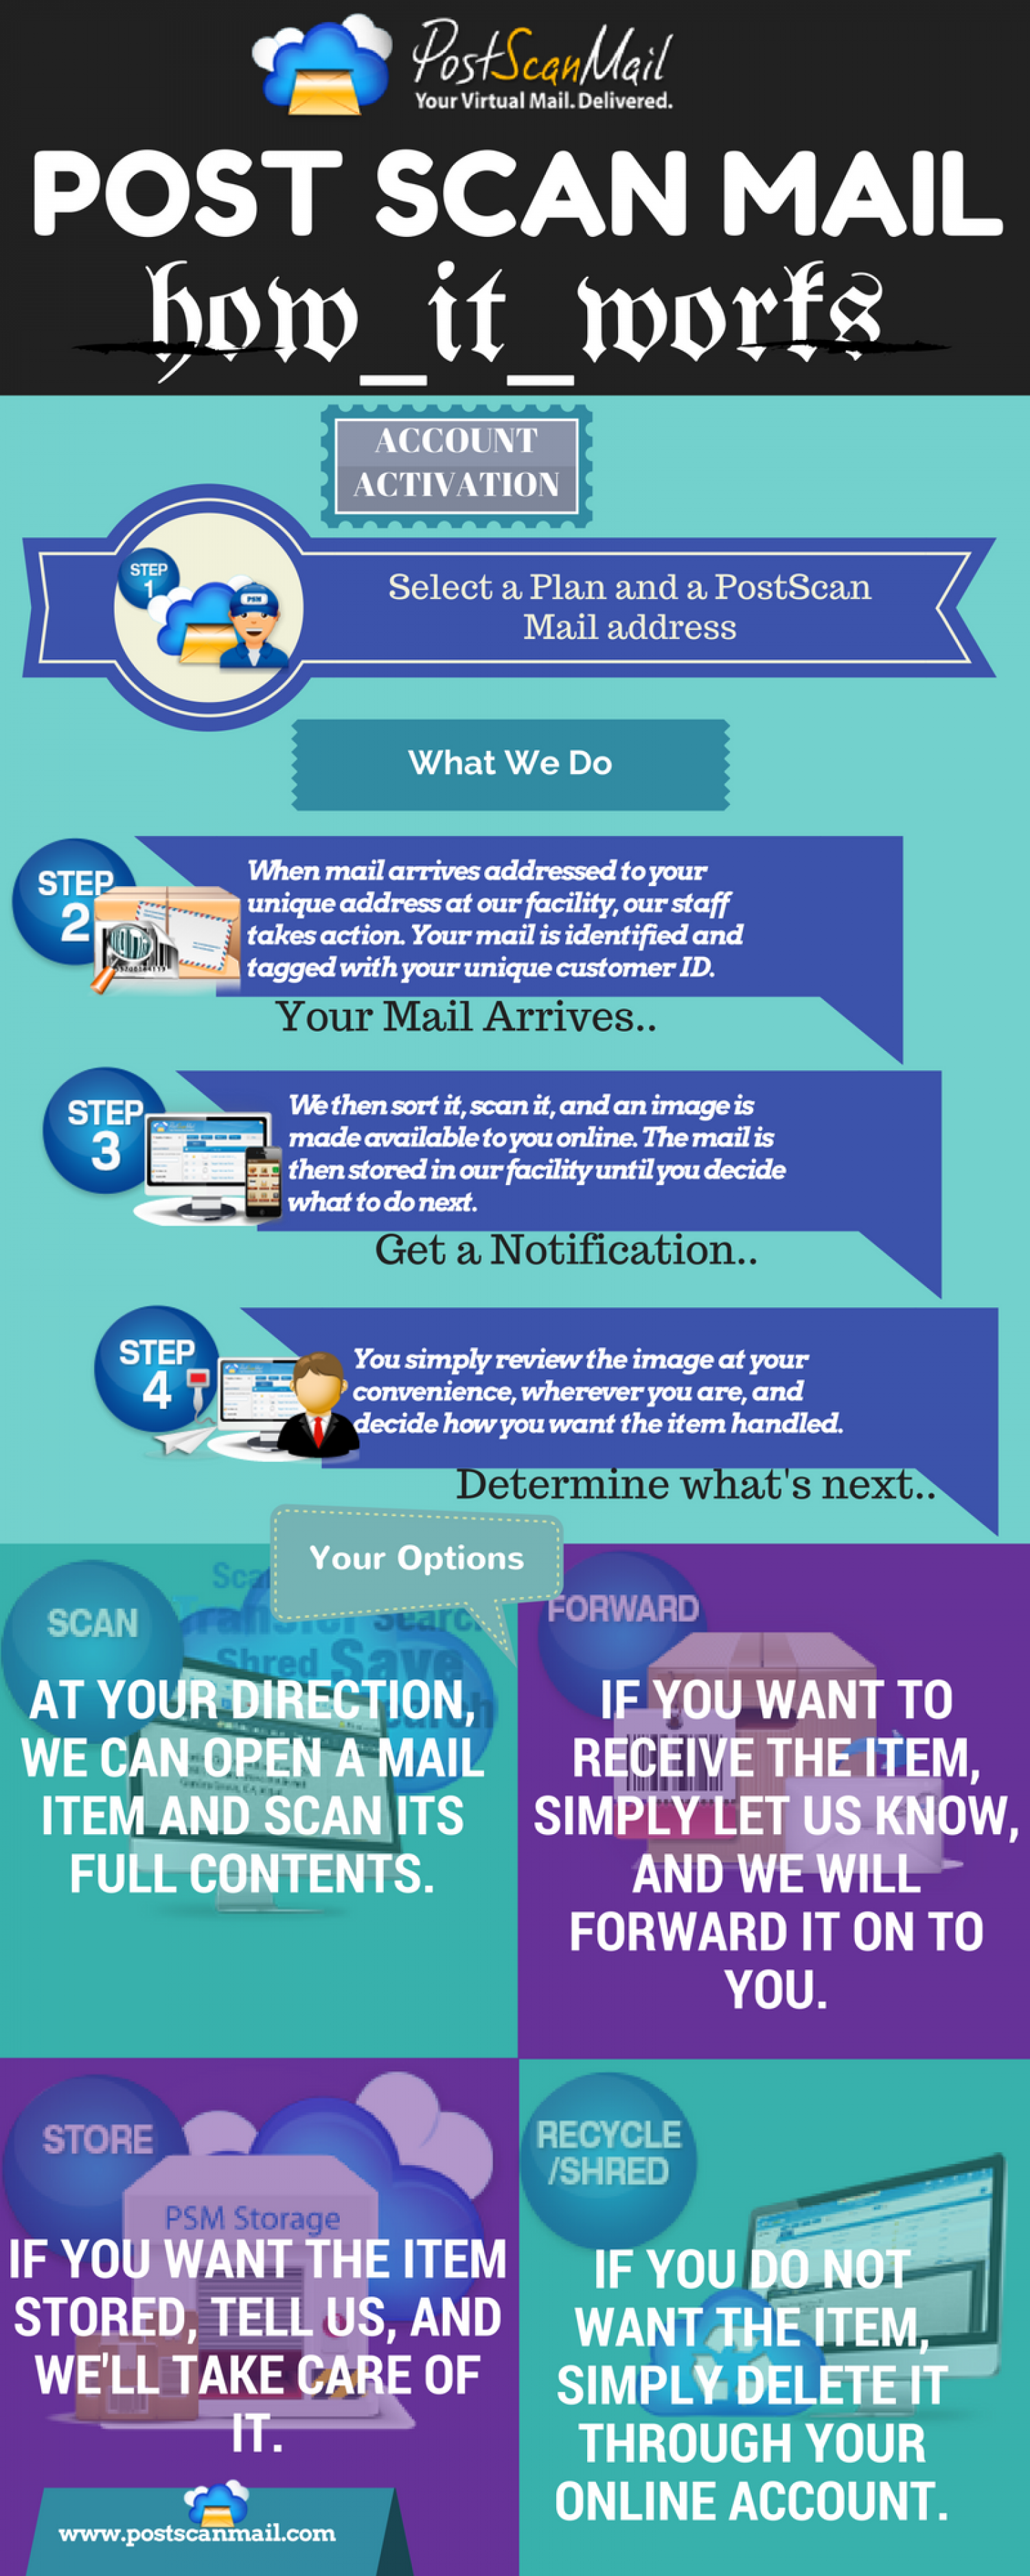 PostScanMail How it Works? Infographic